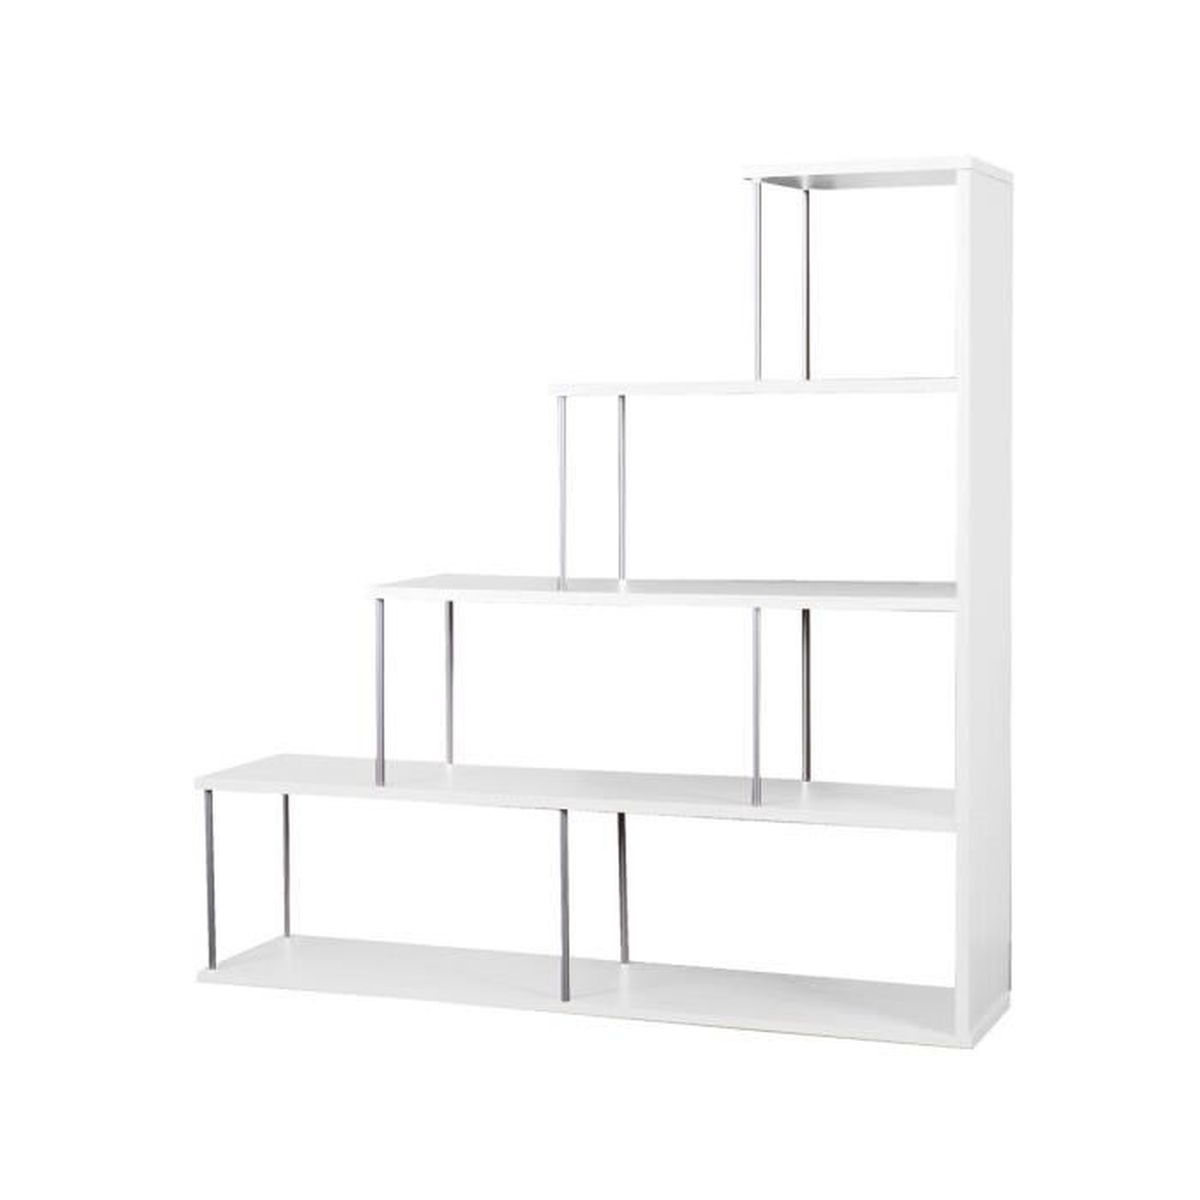 etagere blanche finest etagere with etagere blanche simple tagre blanche brillante grant with. Black Bedroom Furniture Sets. Home Design Ideas